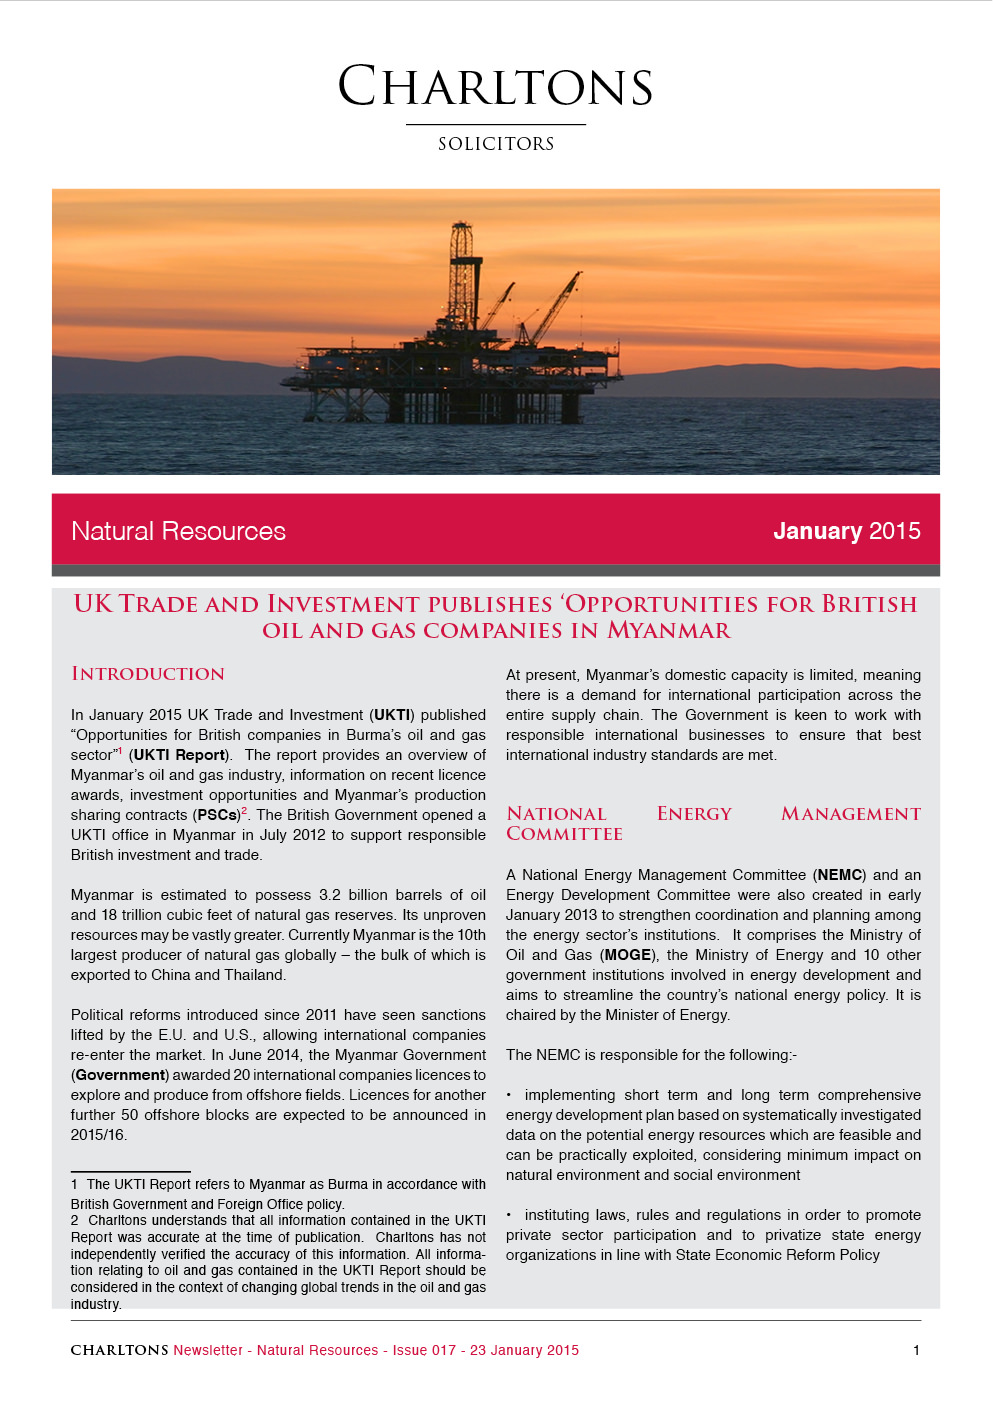 Charltons-Natural-Resources-Newsletters-UK-Trade-and-Investment-publishes-opportunities-for-British-oil-and-gas-companies-in-Myanmar